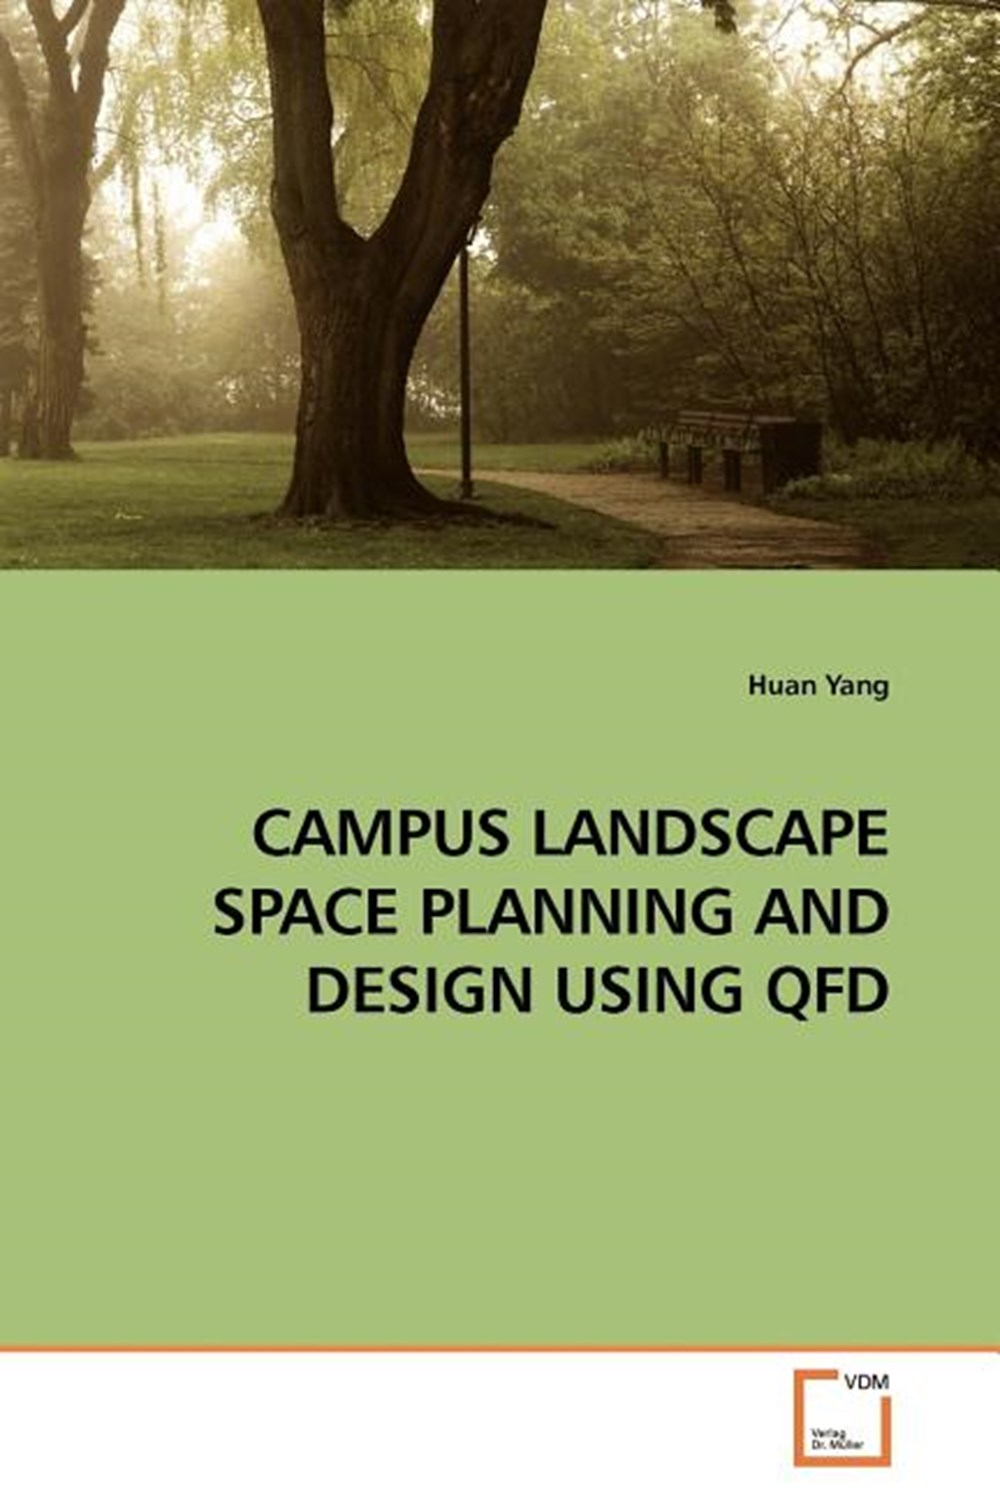 Campus Landscape Space Planning and Design Using QFD